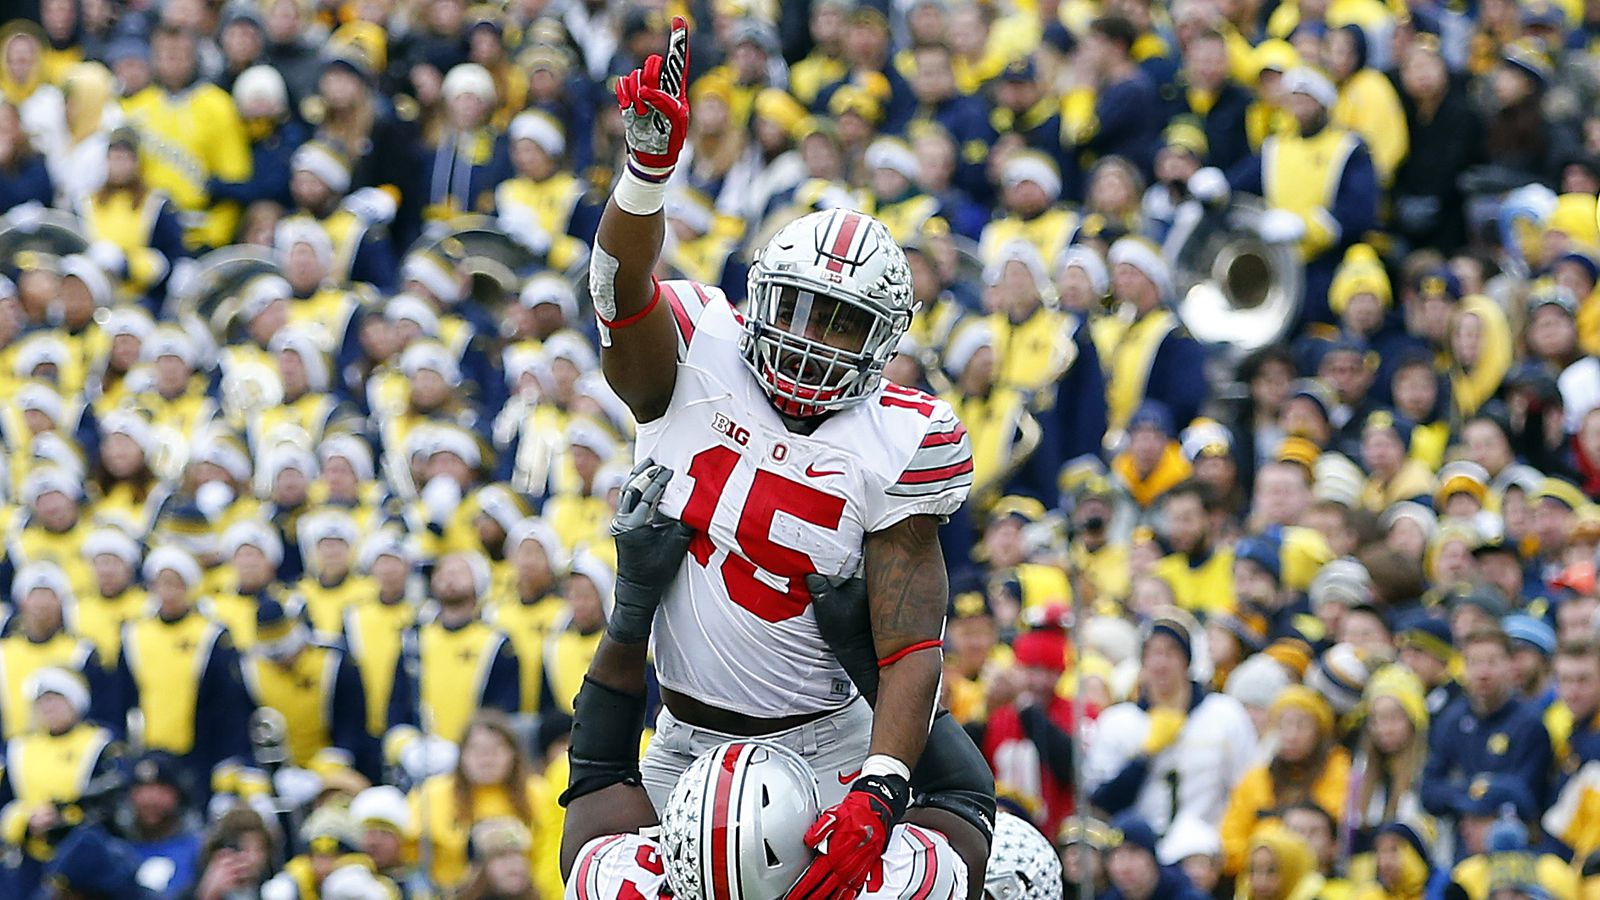 OSU vs Michigan football tickets for Ohio Stadium on Sat Nov 24 2018 Buy and sell Ohio State Buckeyes vs Michigan Wolverines Football tickets at